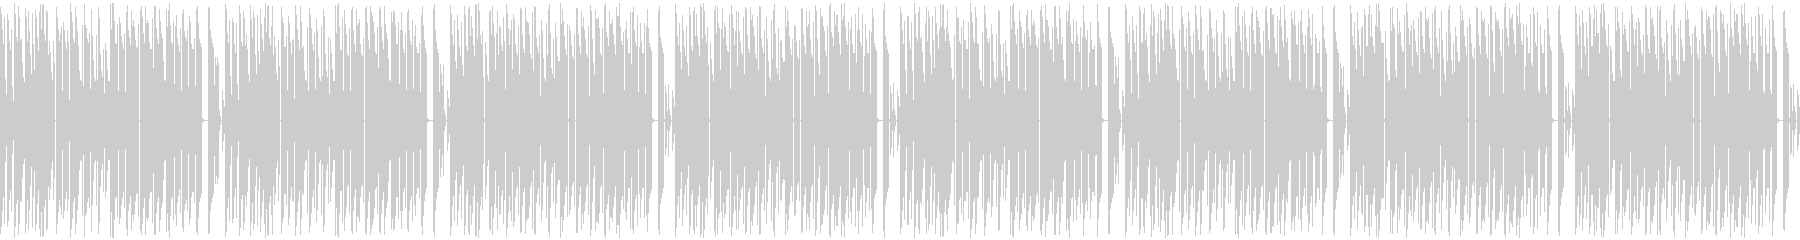 For 8bit Honobono town and shops and events's unreproduced waveform